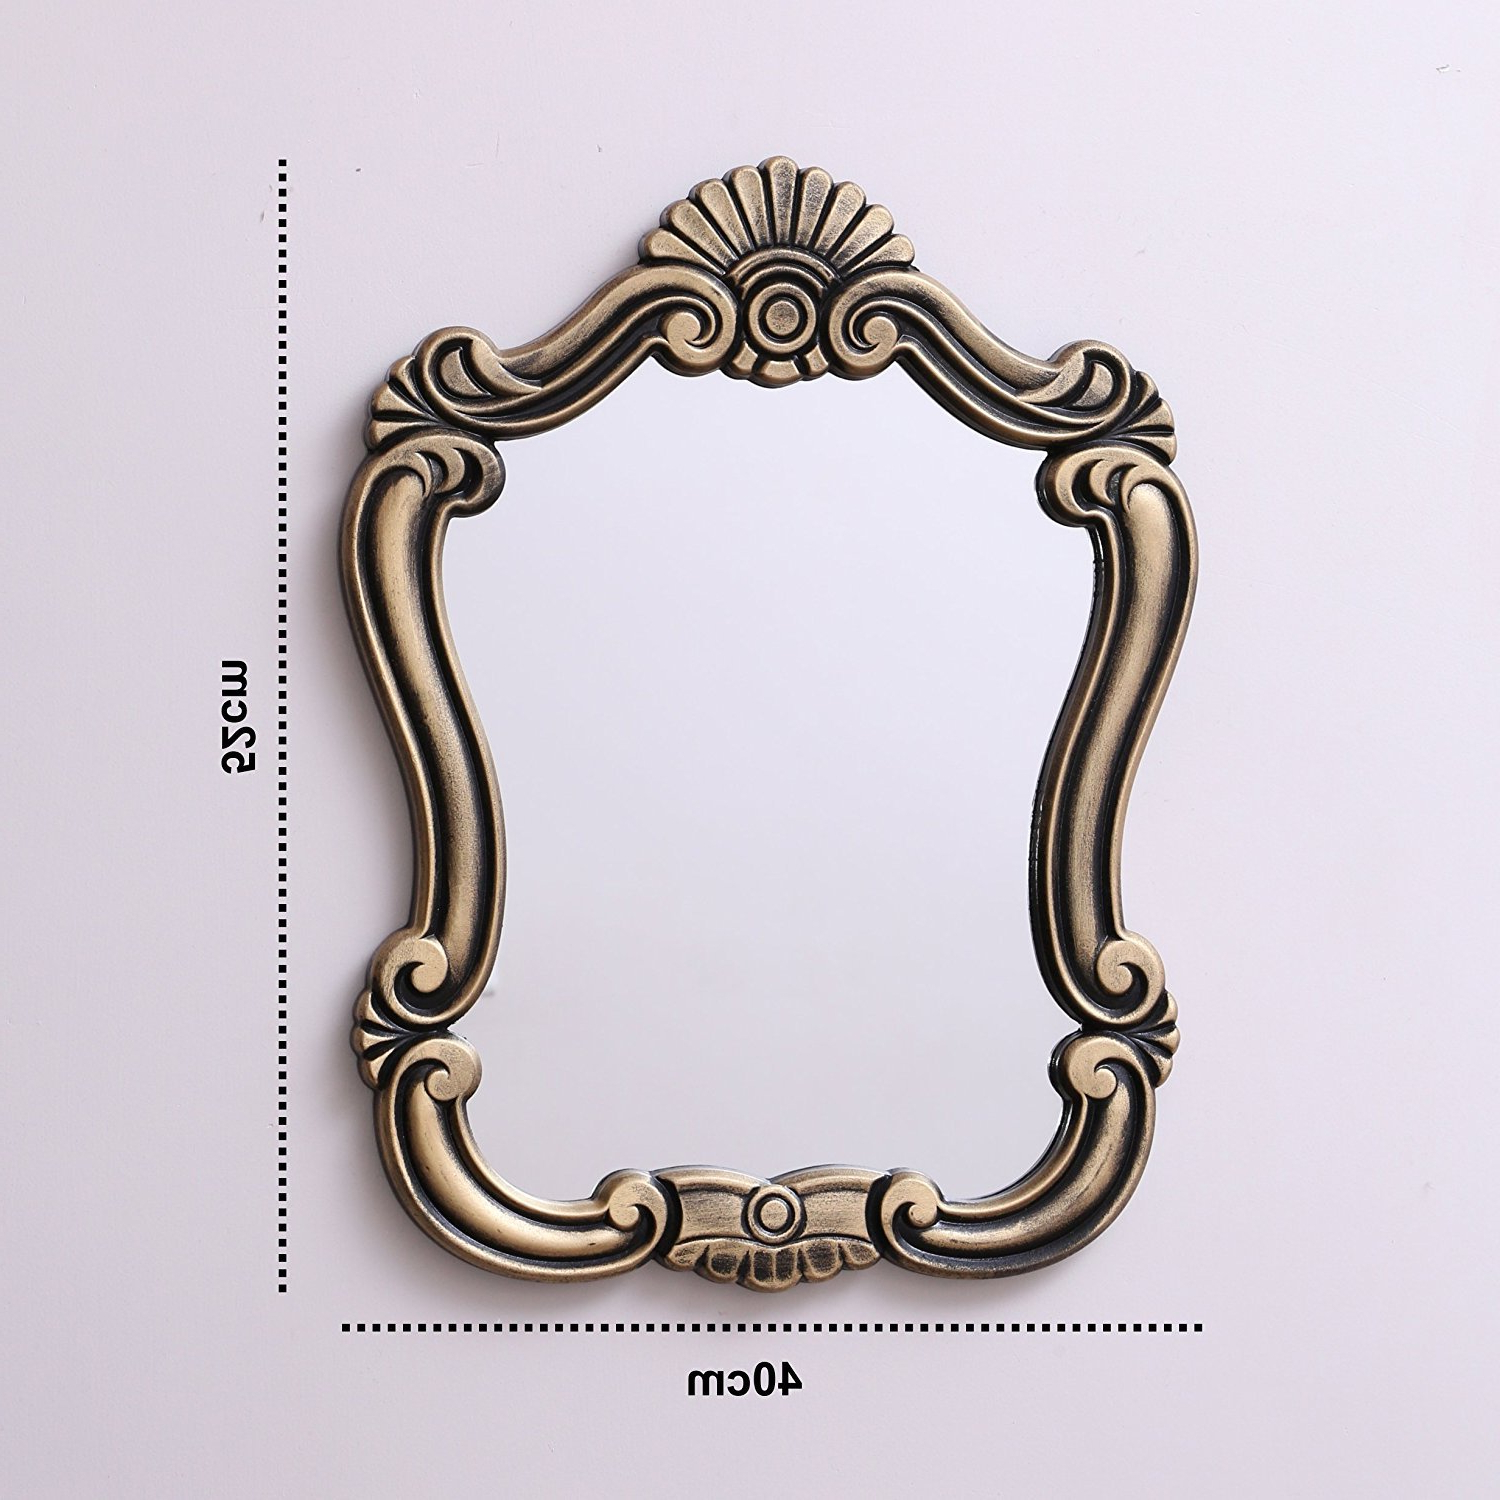 Current Vintage Style Wall Mirrors With Regard To Kurtzy Vintage Style Home Decorative Wooden Vanity Wall Mirror Glass For Living Bathroom Bedroom (View 7 of 20)